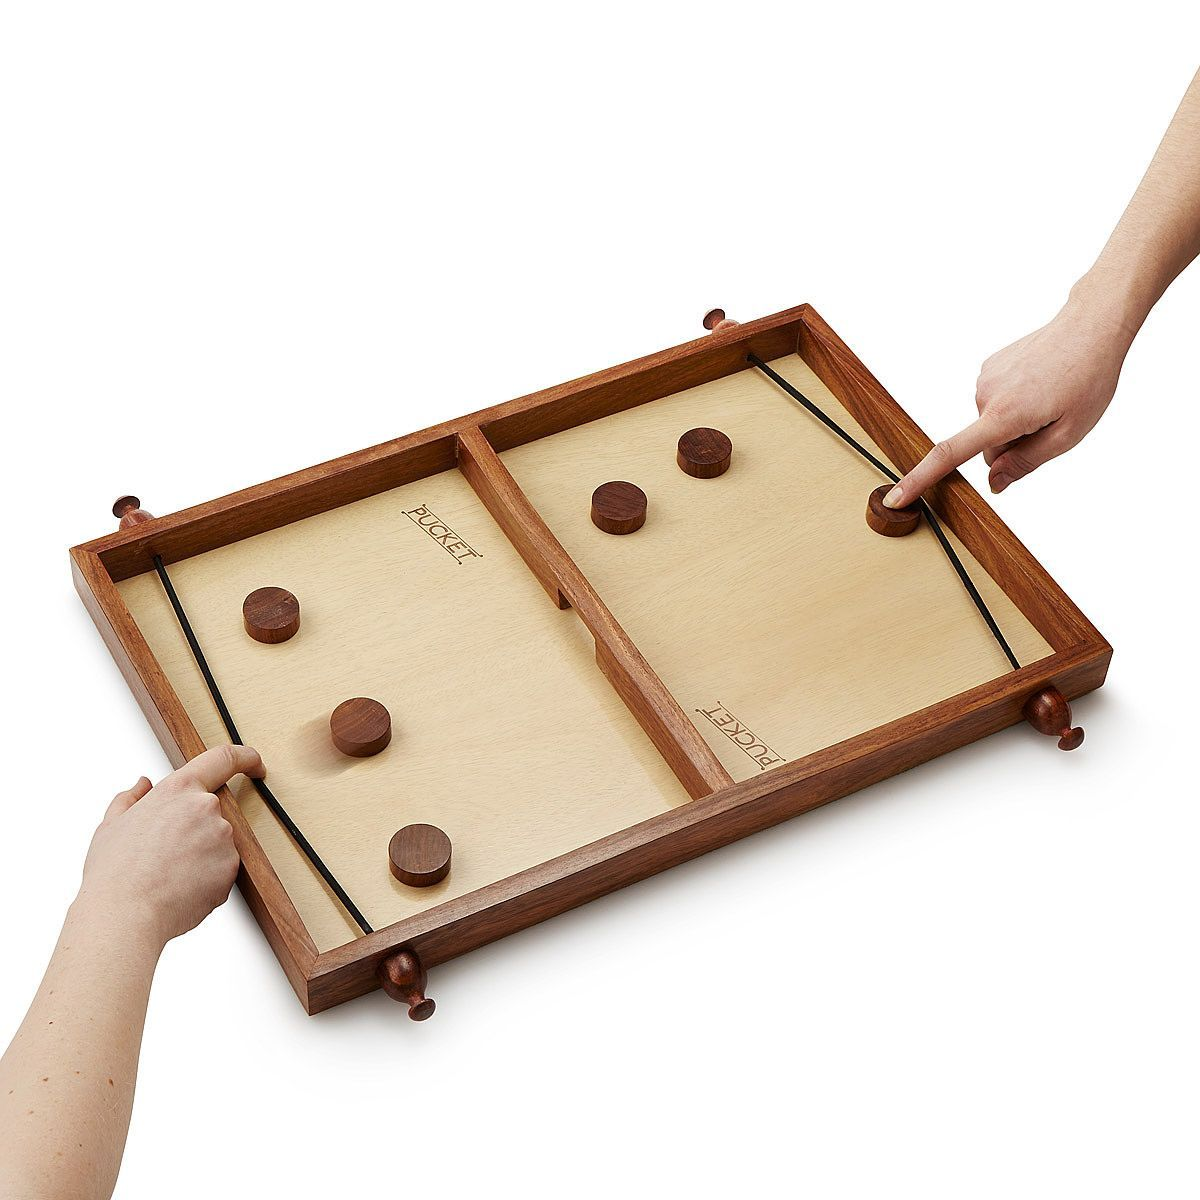 Handcrafted Games Handmade Pucket Tabletop Gaming And Toy